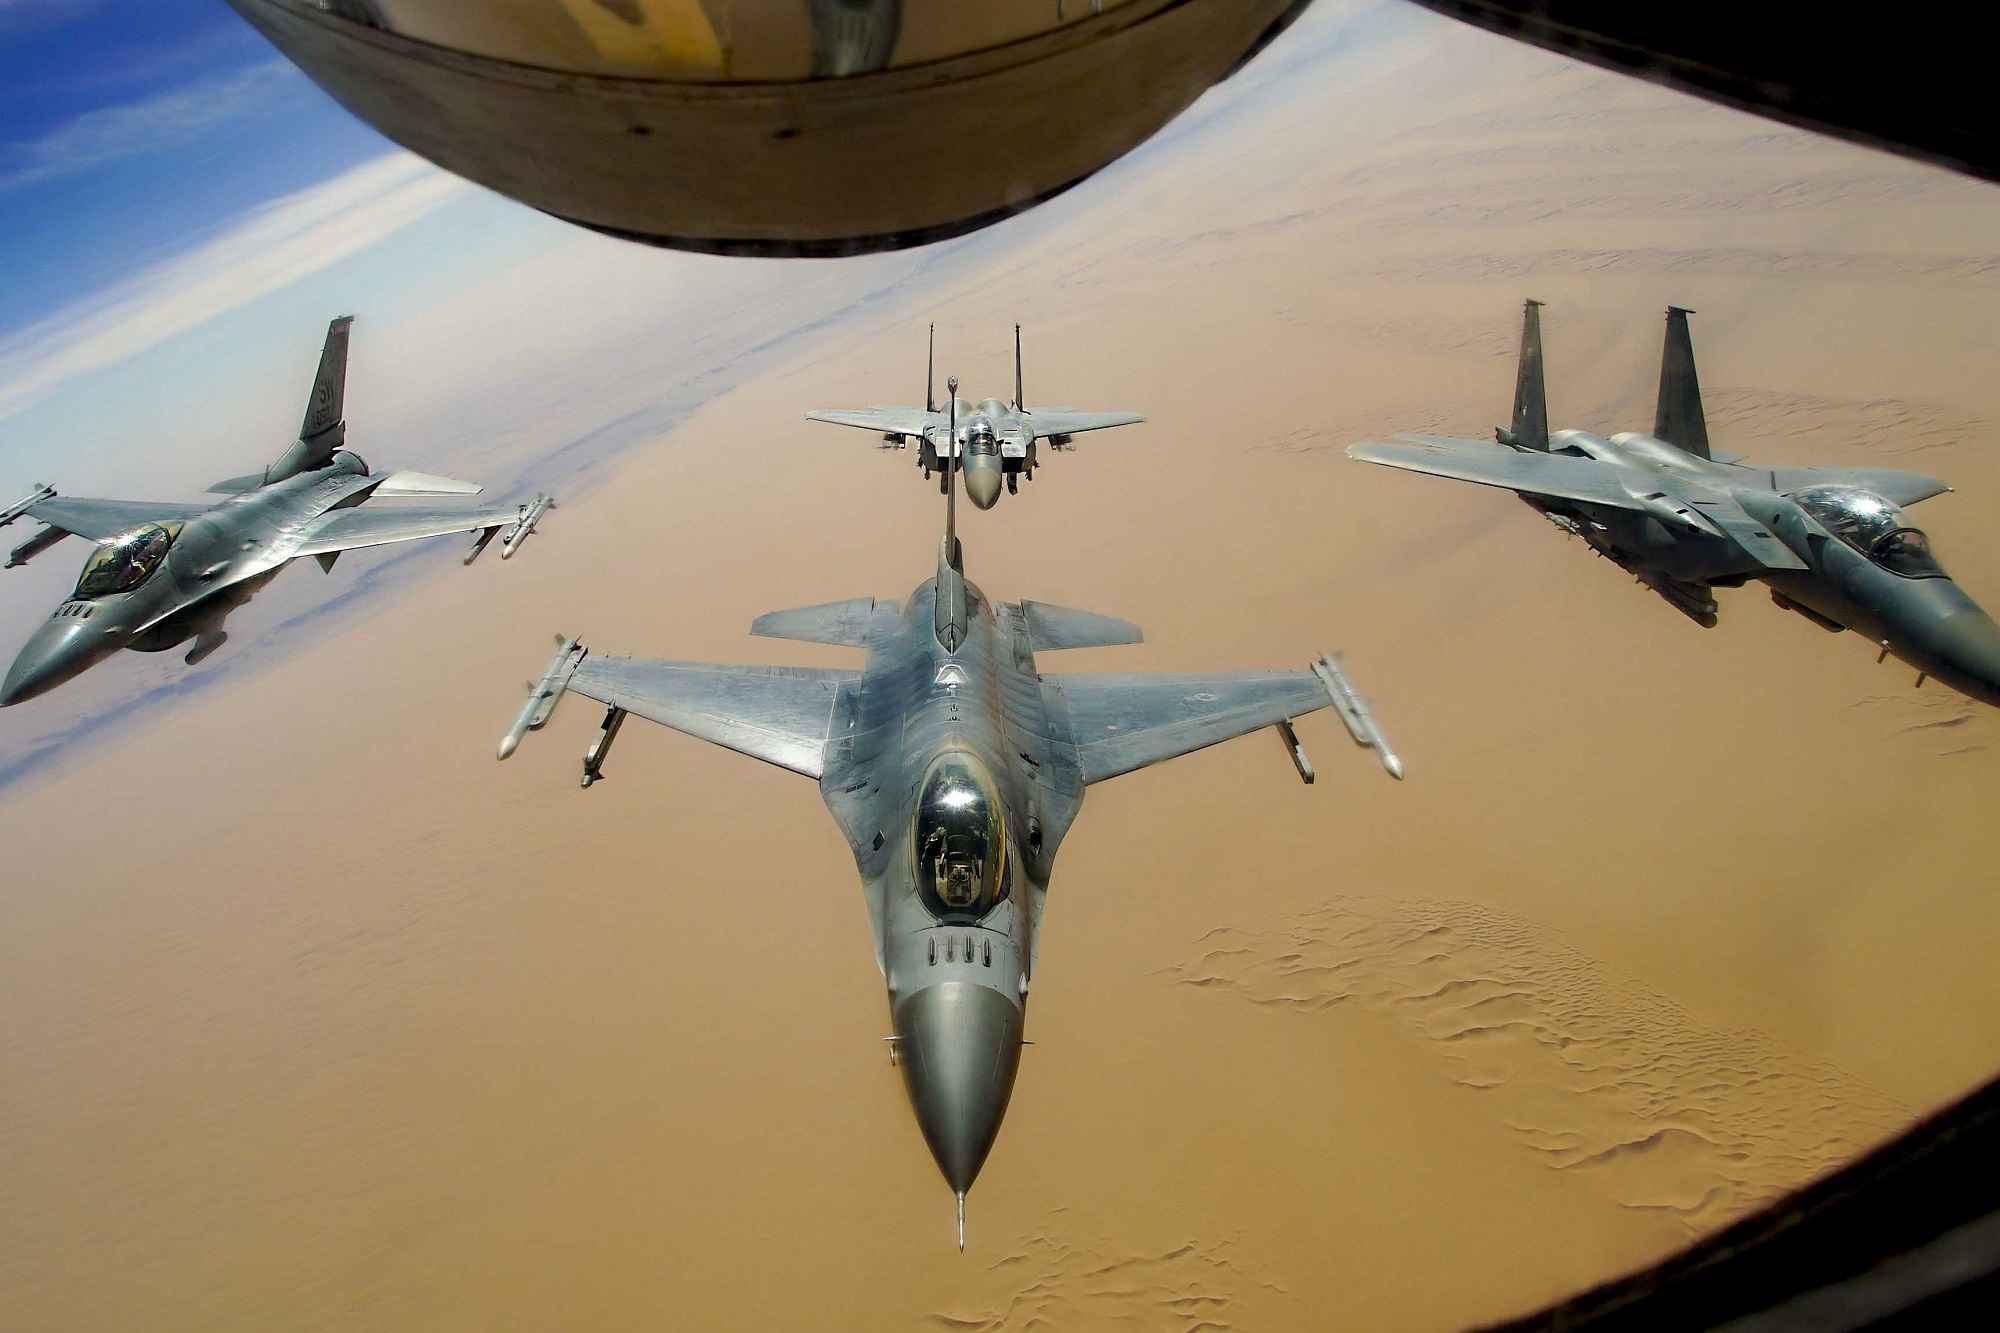 Two U.S. Air Force F-16 Fighting Falcons fly in formation with two Royal Saudi Air Force F-15E Strike Eagles after receiving fuel from a KC-135R Stratotanker during a routine exercise over Southwest Asia, Dec. 15, 2020. (Staff Sgt. Taylor Harrison/Air Force)